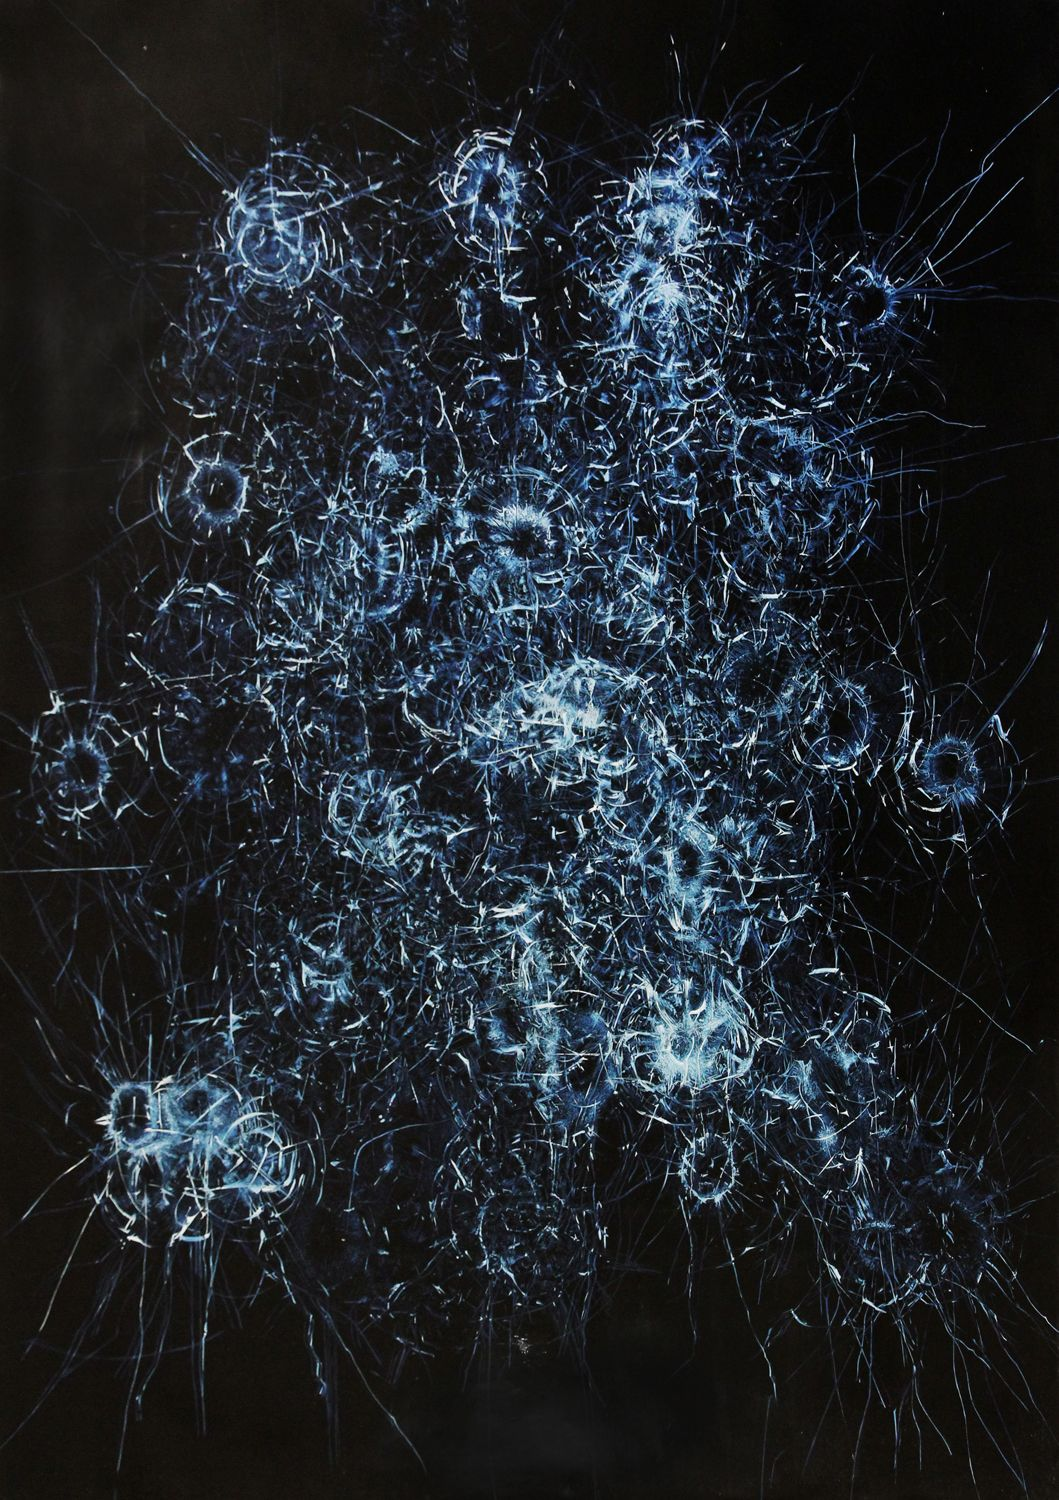 Zhao Zhao 赵赵 (b. 1982), Constellations No.4 æ˜Ÿç©º No.4, 2014